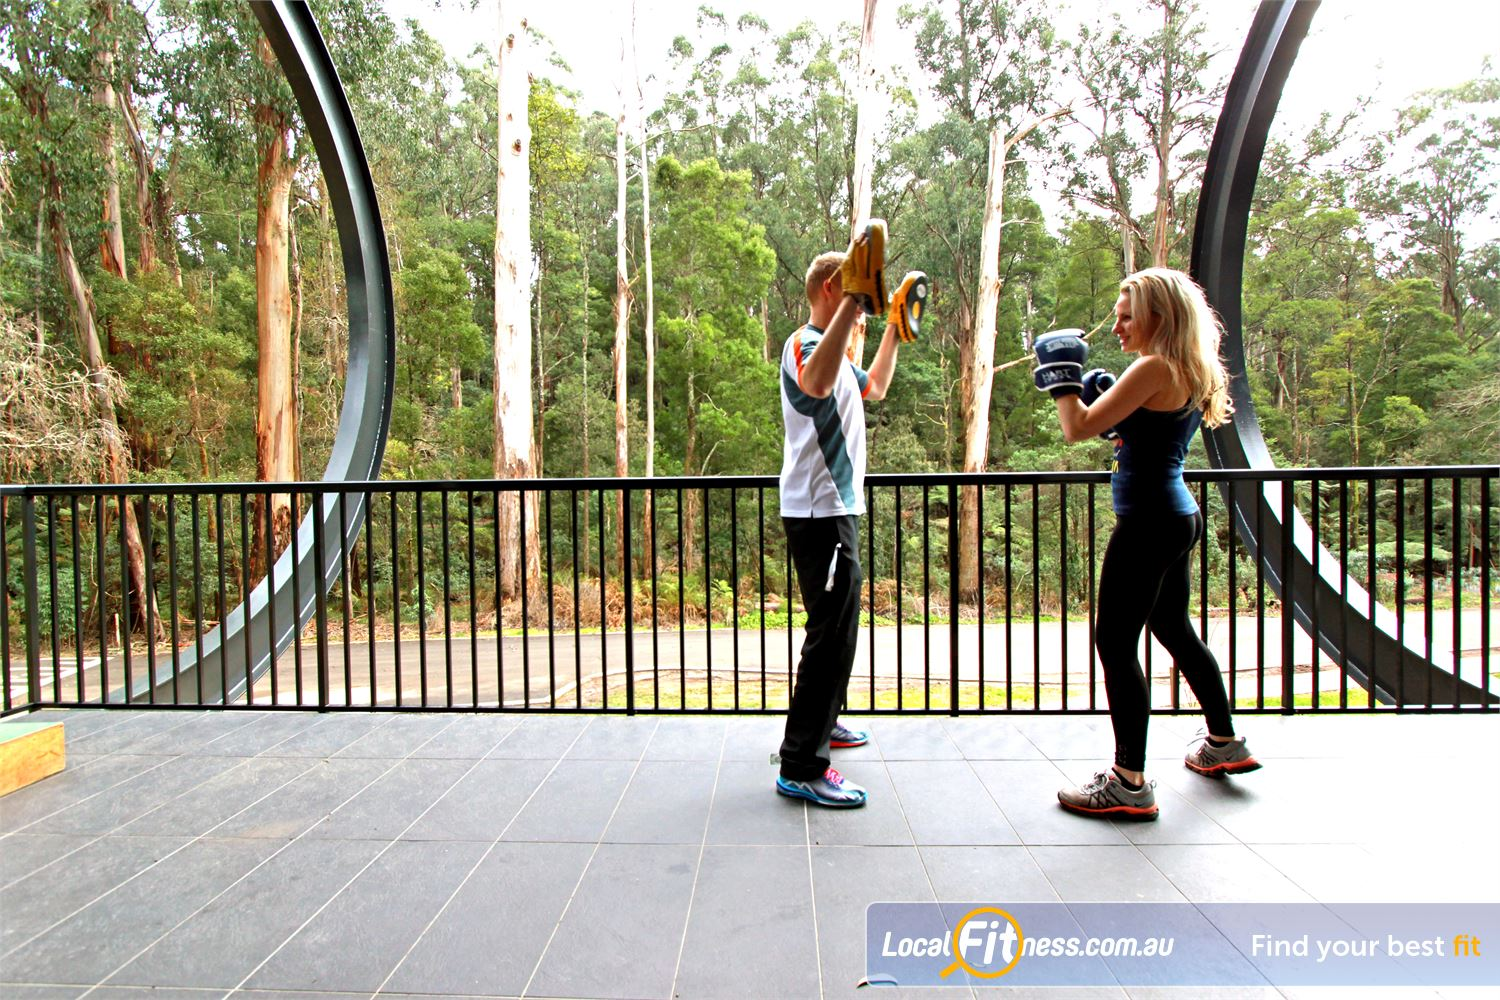 Monbulk Aquatic Centre Monbulk Our Monbulk gym provides unique charming forest views.